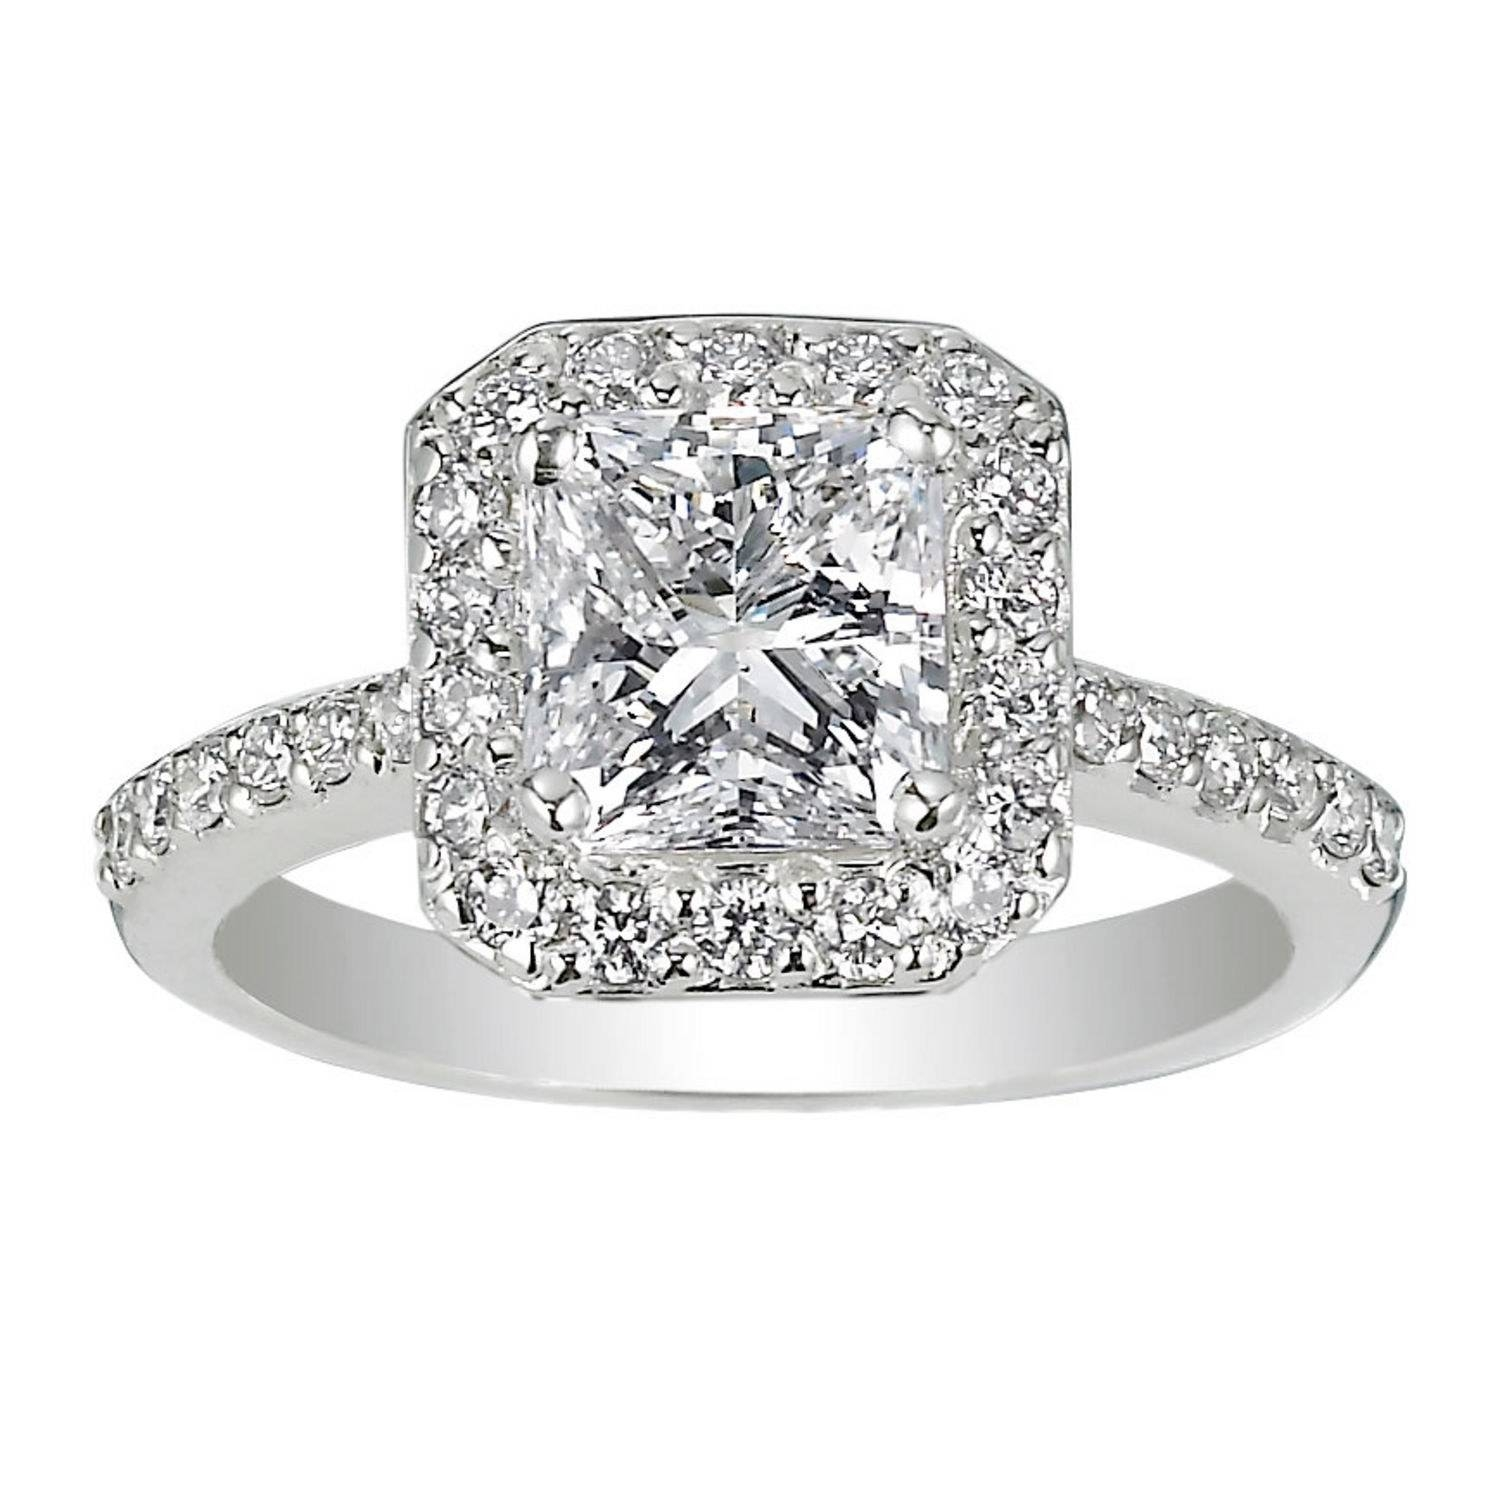 62 Diamond Engagement Rings Under $5,000 | Glamour Within Womans Engagement Rings (View 1 of 15)